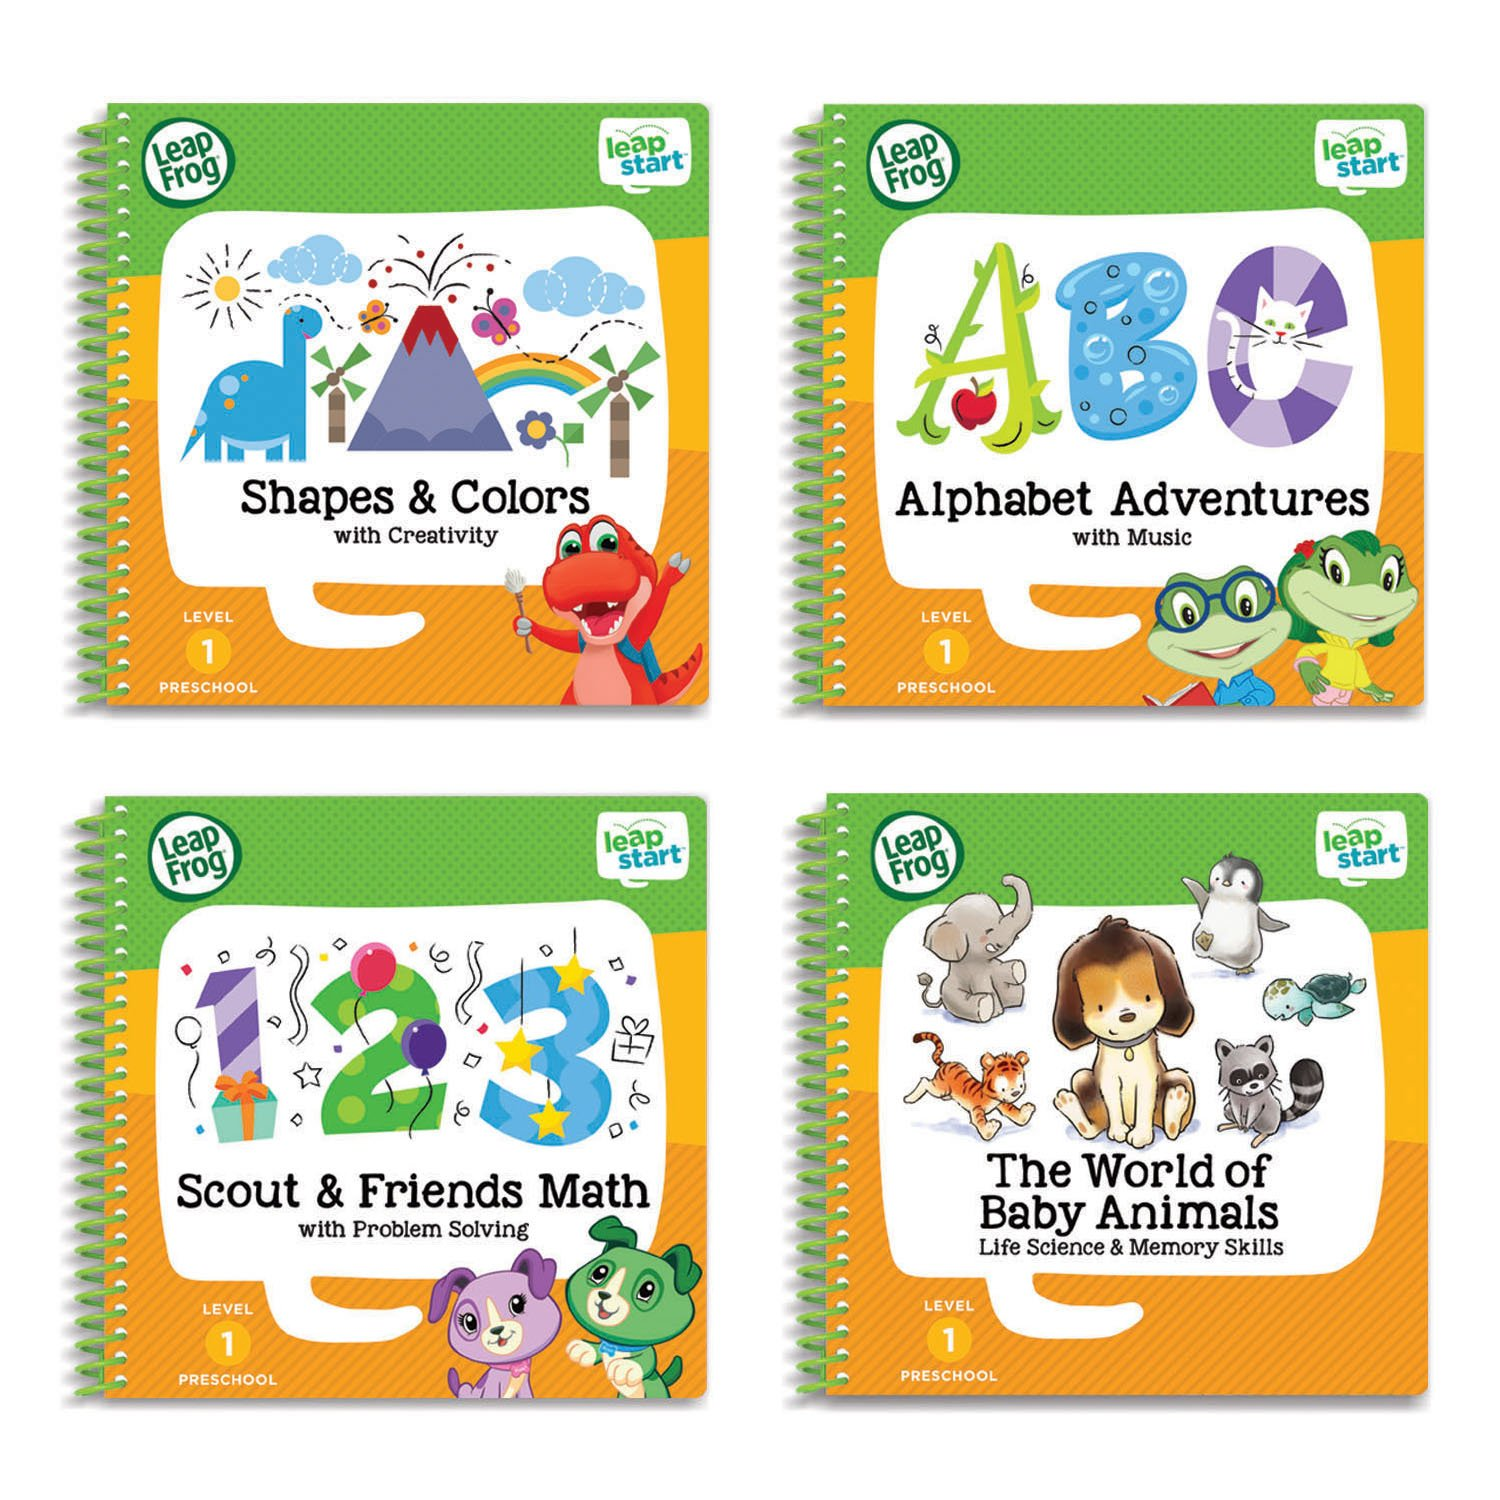 Amazon.com: LeapFrog Leapstart Level 1 Preschool 4-in-1 Activity ...